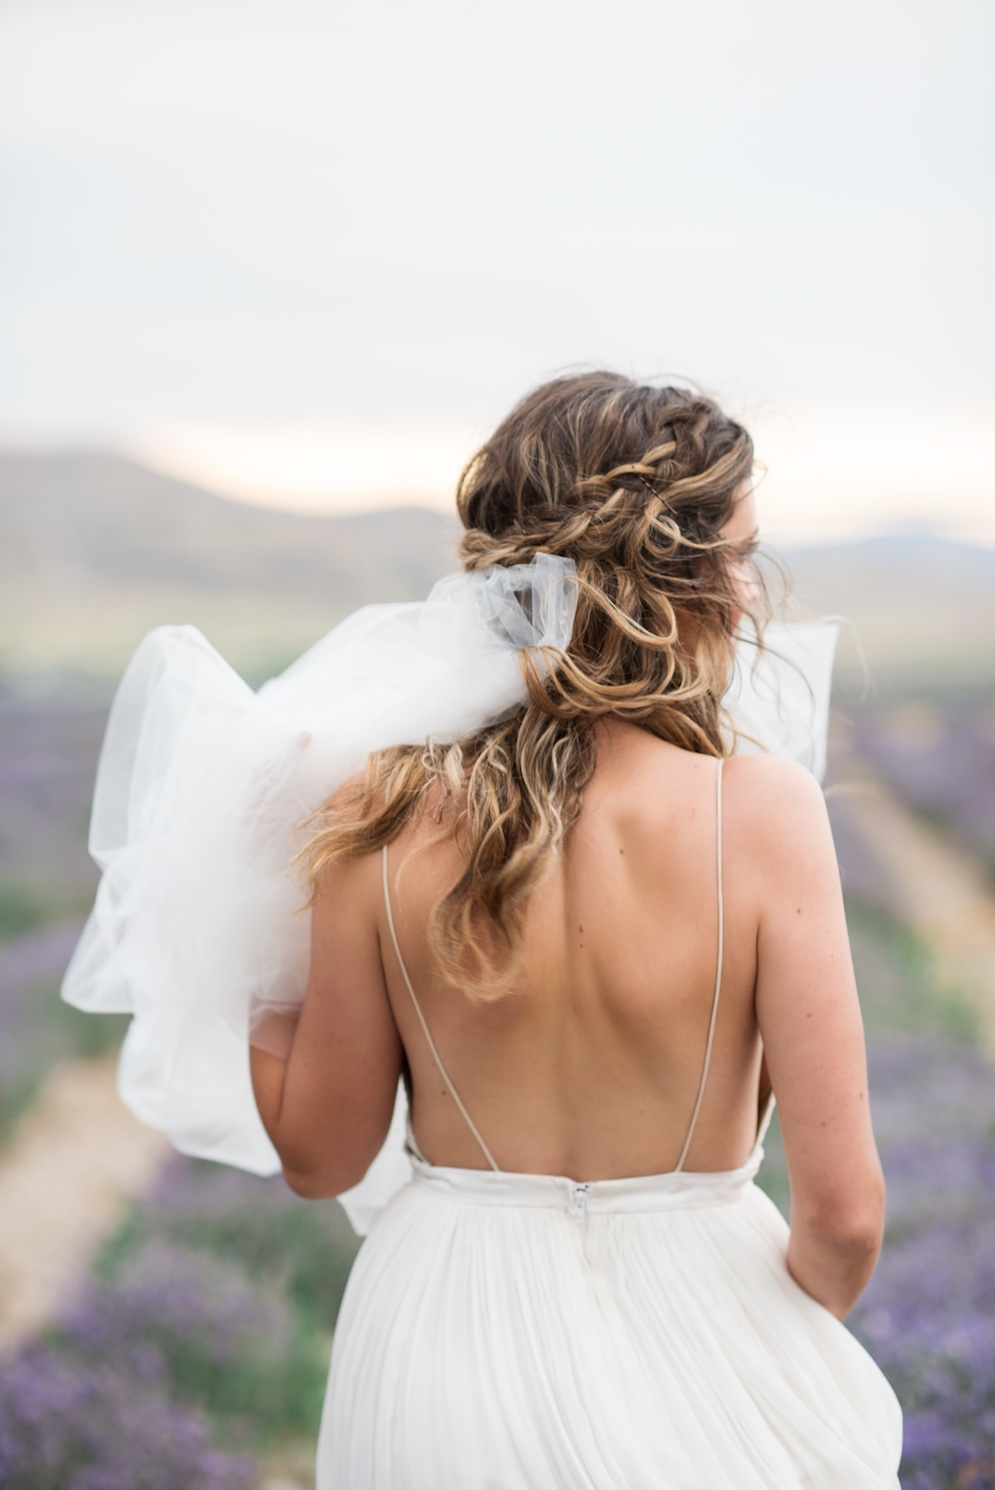 South of France Wedding, dreamy lavender wedding inspiration utah flowers calie rose